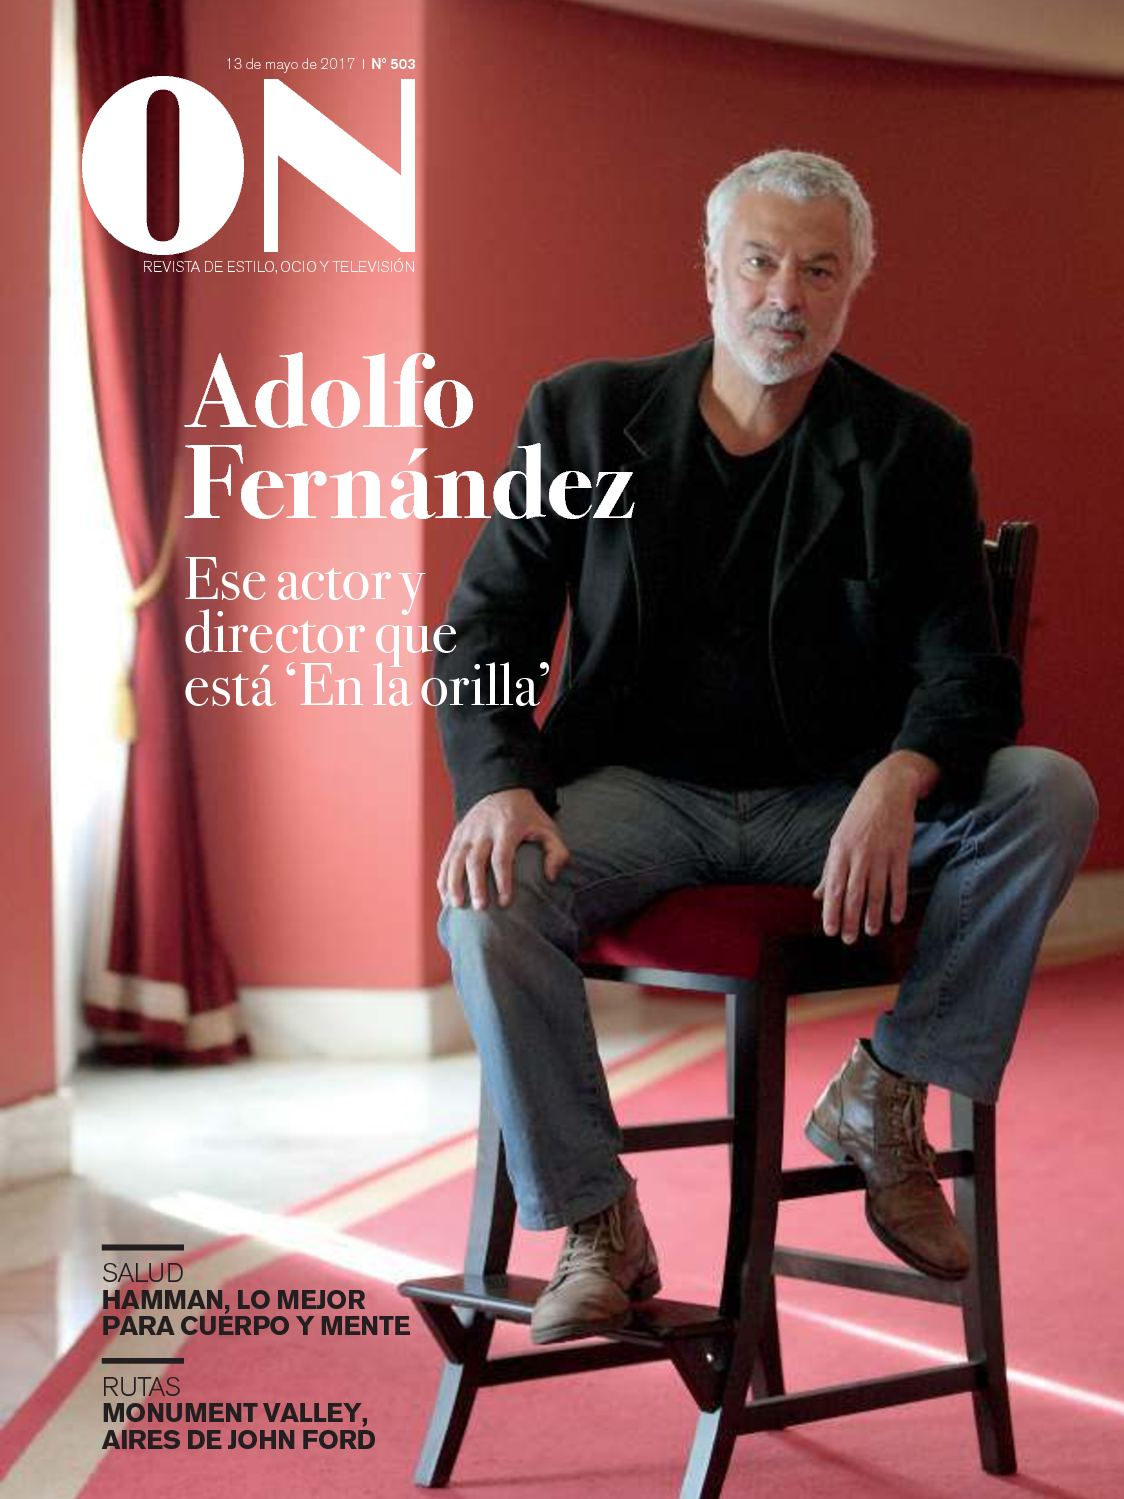 Calaméo On Revista De Ocio Y Estilo 20170513